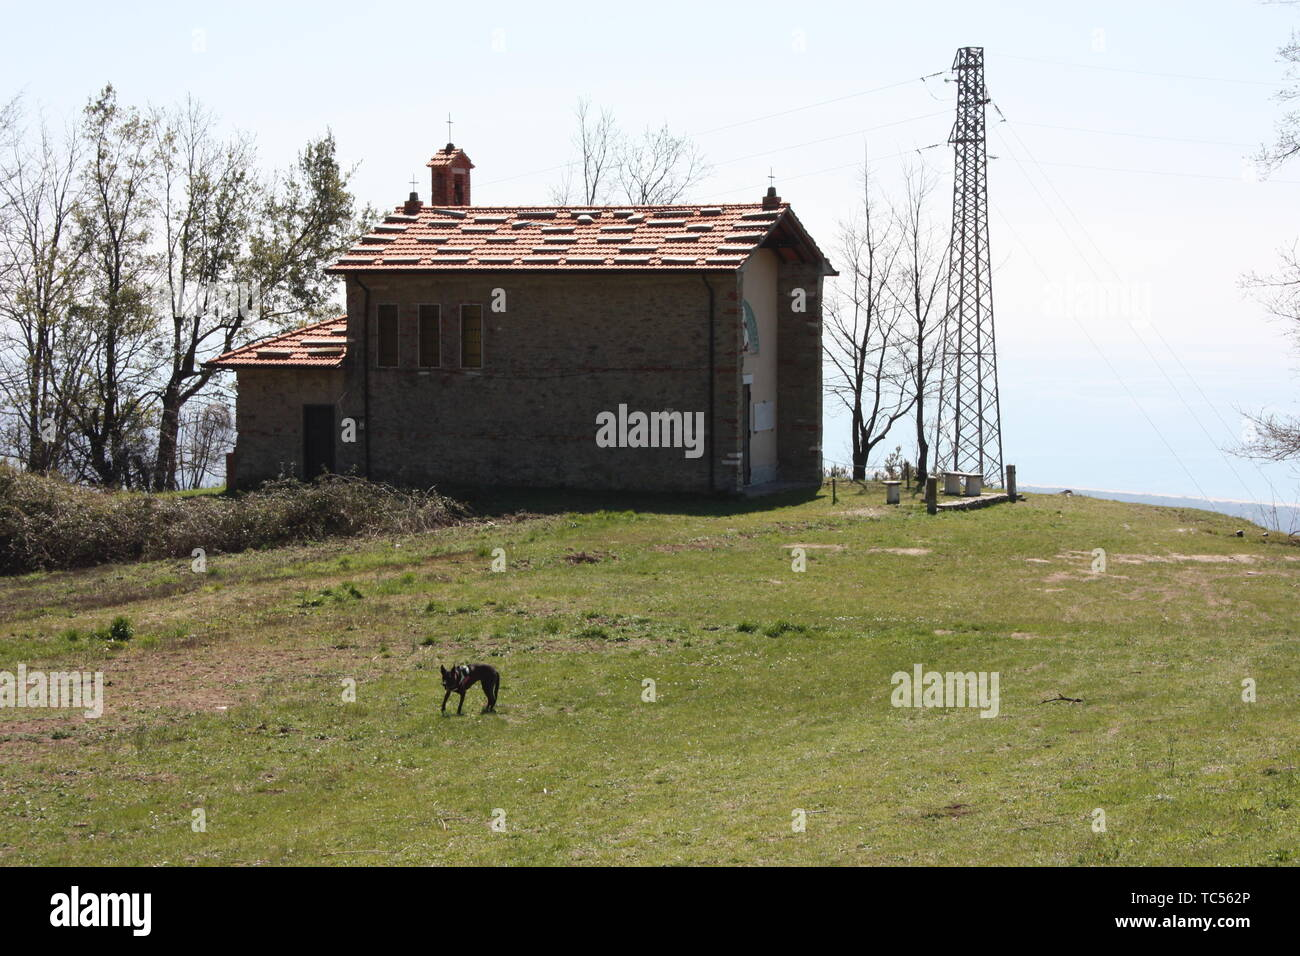 small church abandoned, in disuse, on the Apuan Alps of the Tuscan Apennines in a clearing on a sunny spring day - Stock Image